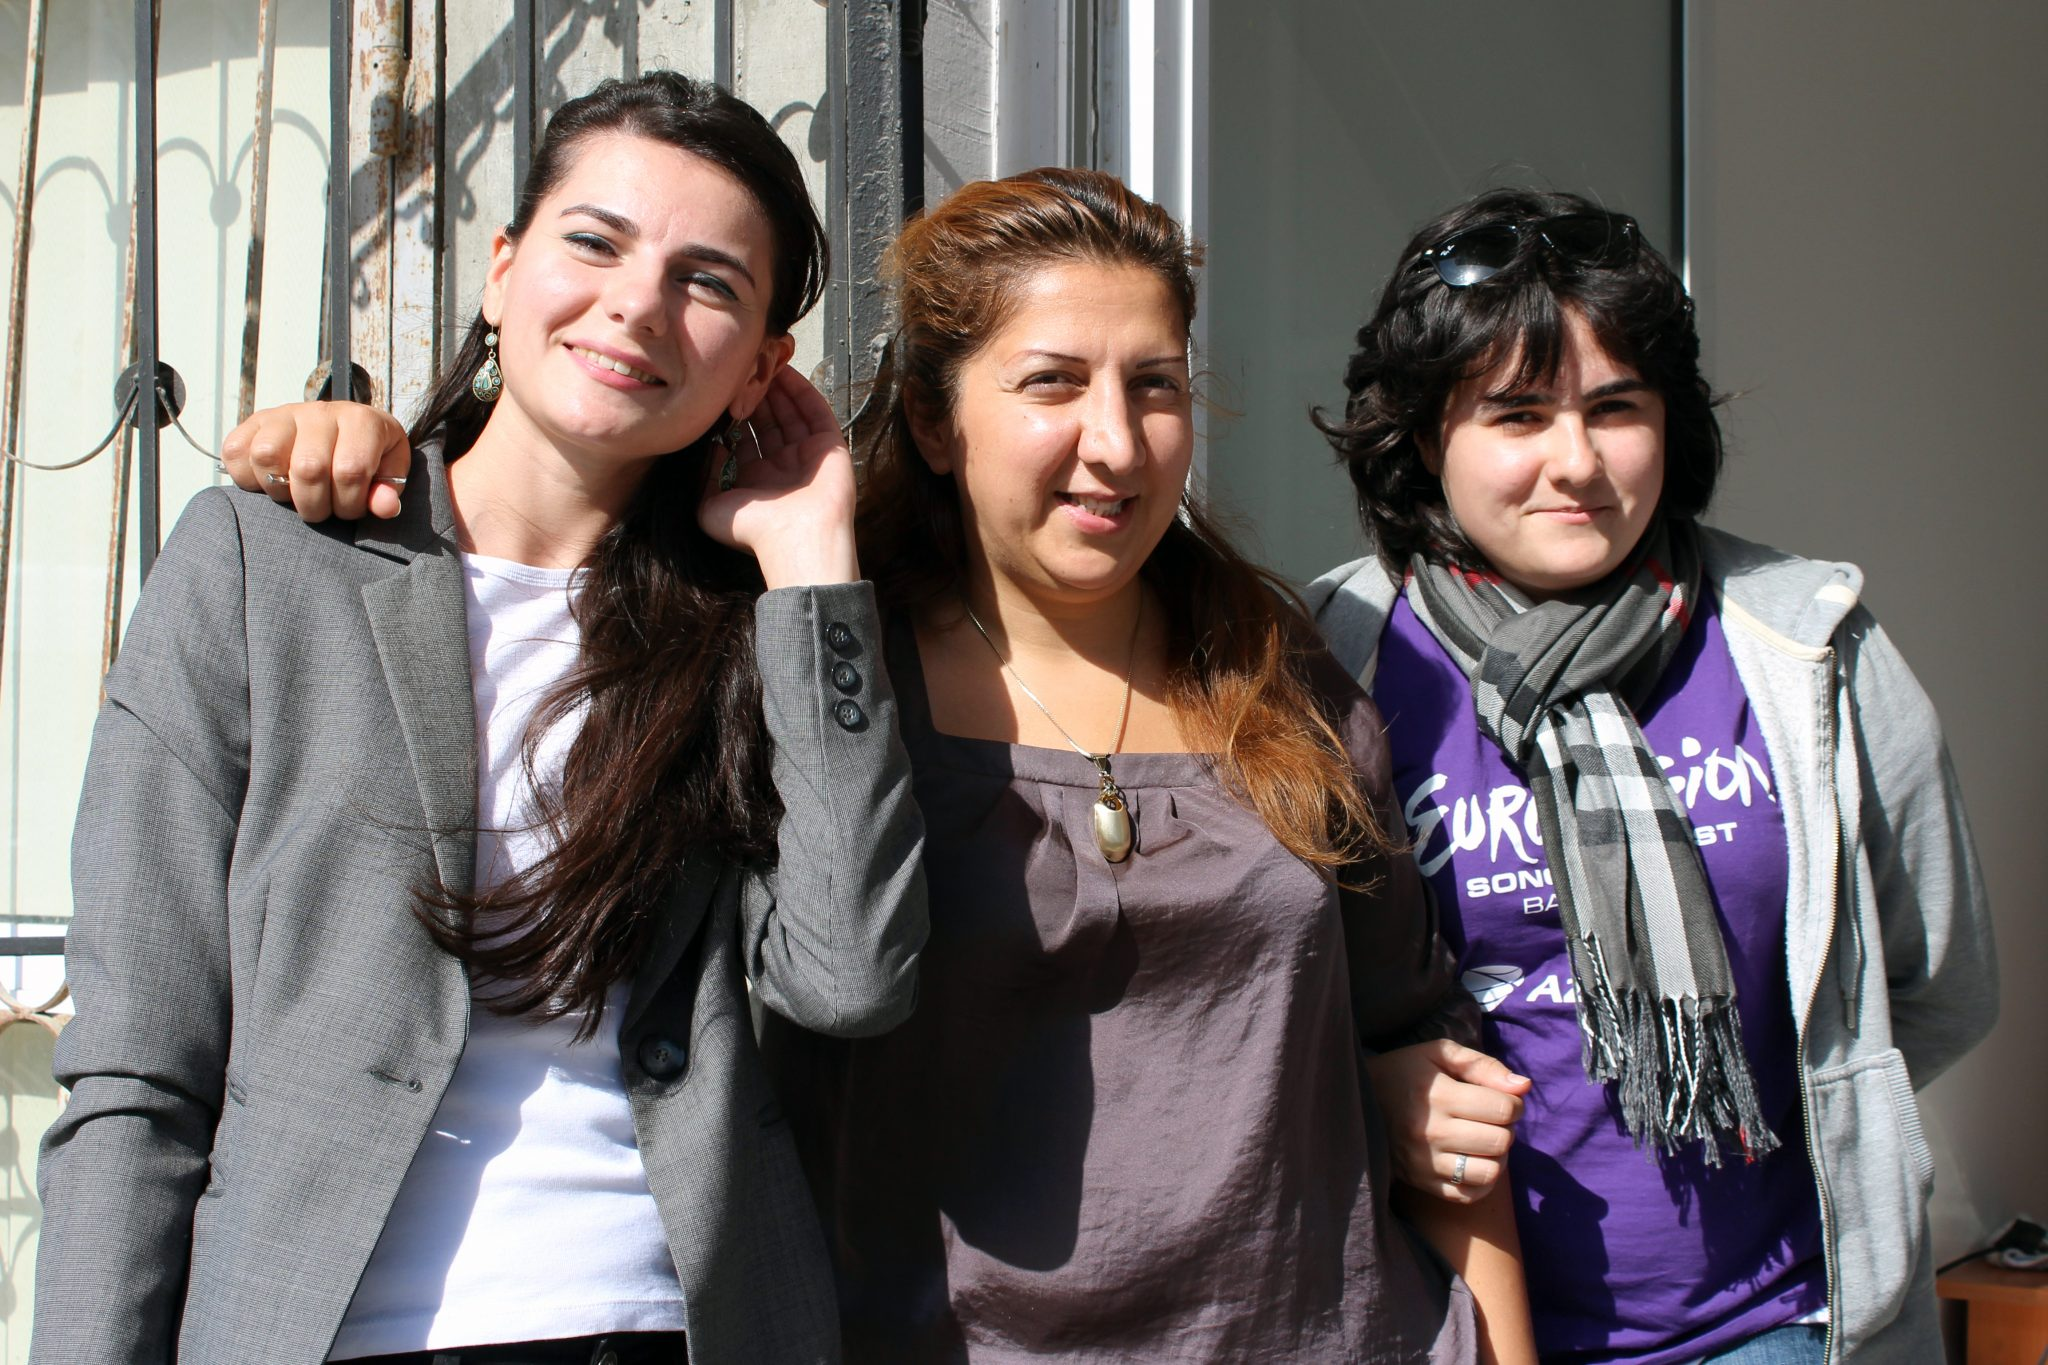 Women activists from Azerbaijan who encourage young women to stand up for a peaceful settlement of the Nagorno-Karabakh conflict. Photo: Karin Råghall / Kvinna till Kvinna